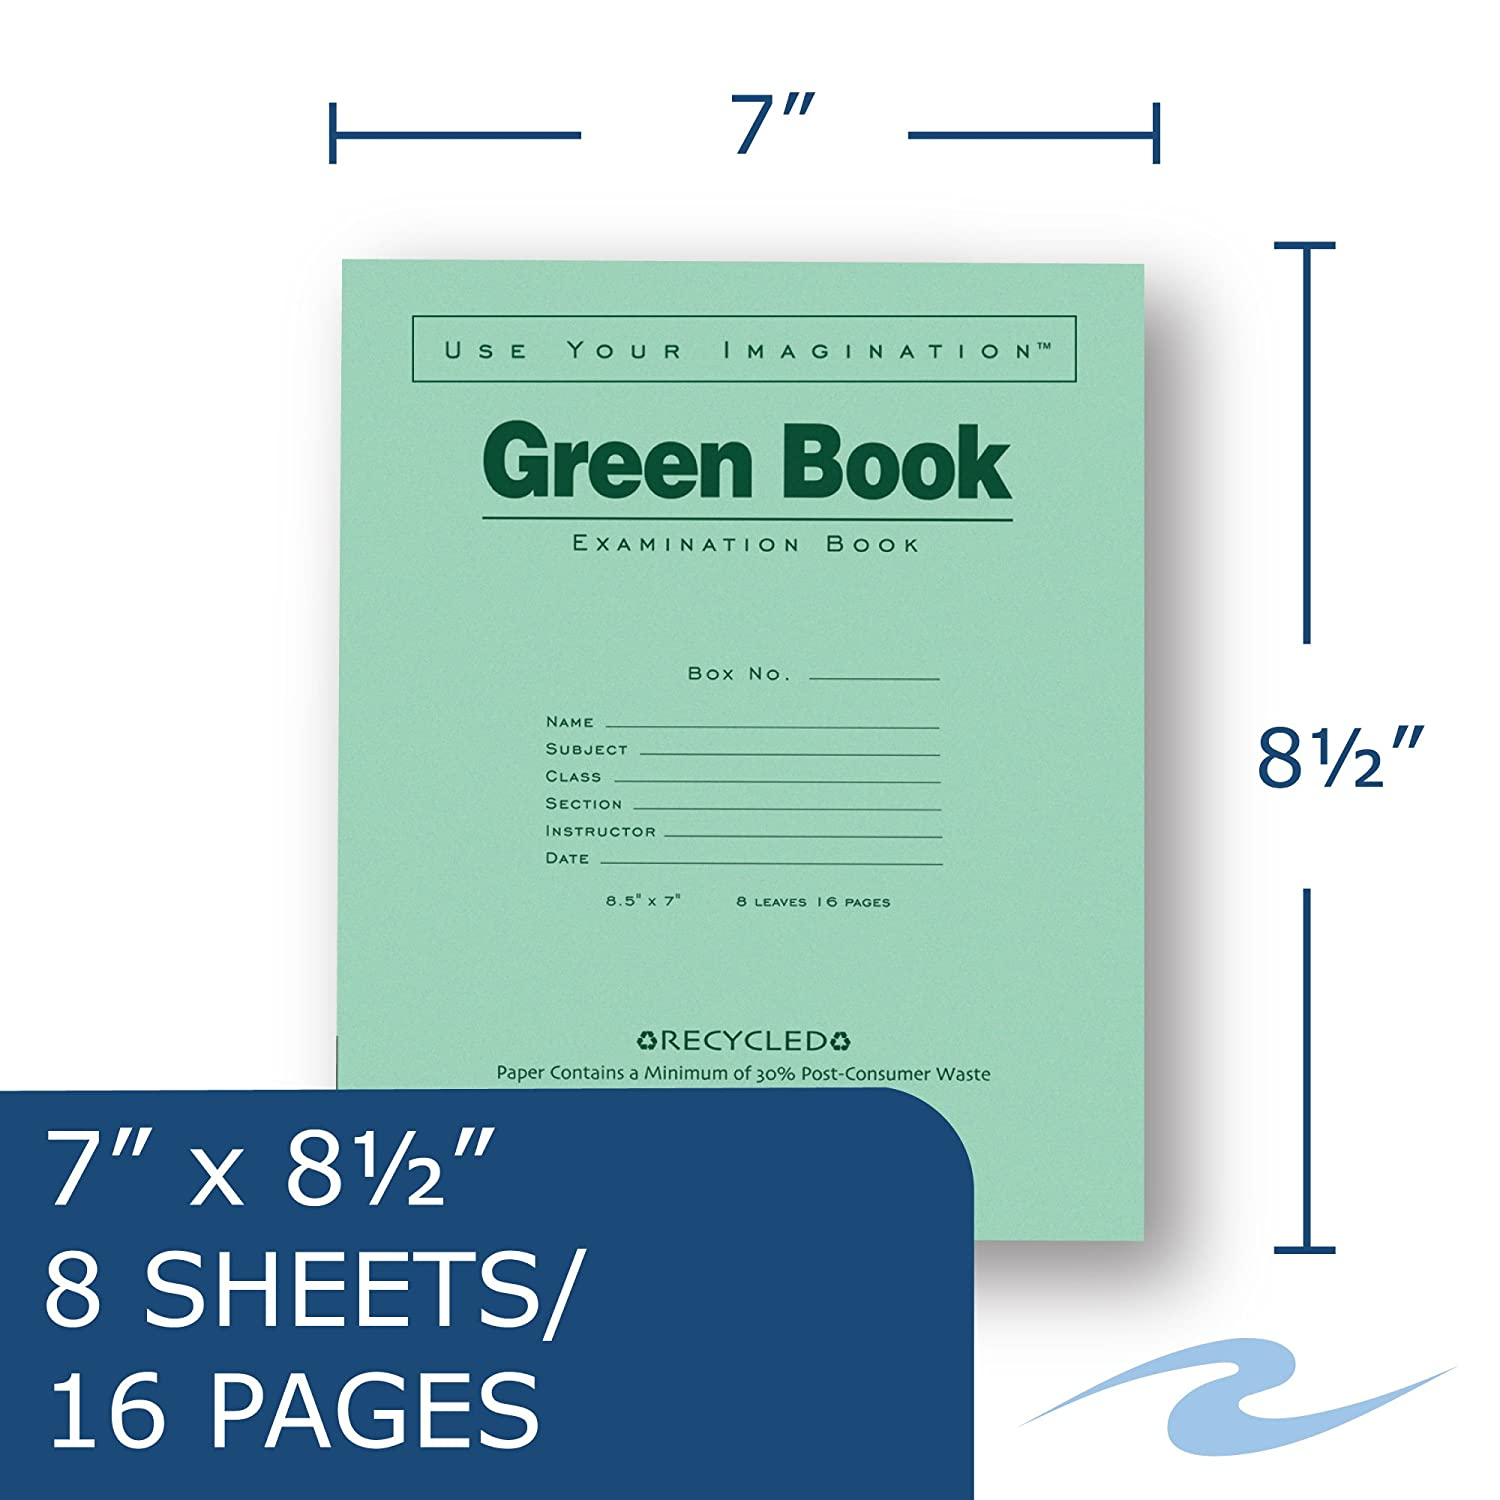 8.5 x 7 8 sheets//16 pages. Roaring Spring Recycled Exam Book